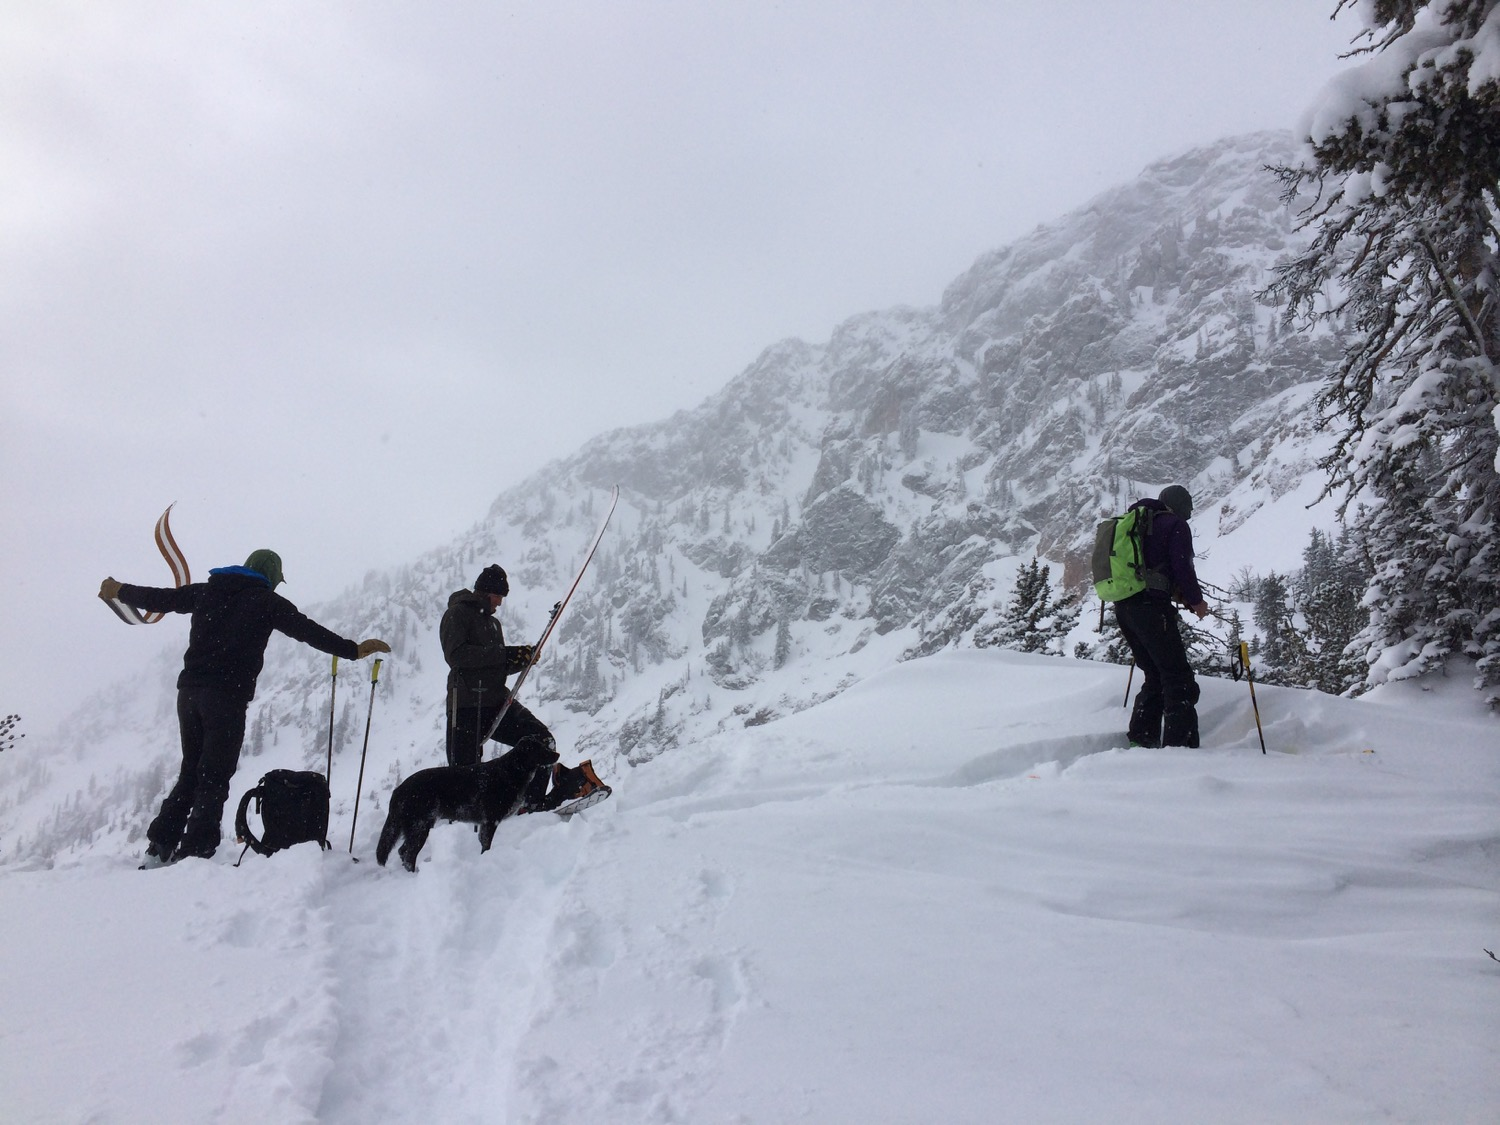 Boys, snow, wind, skis and a powder hound. What more could a girl ask for? (Photo by Emily Stifler Wolfe)